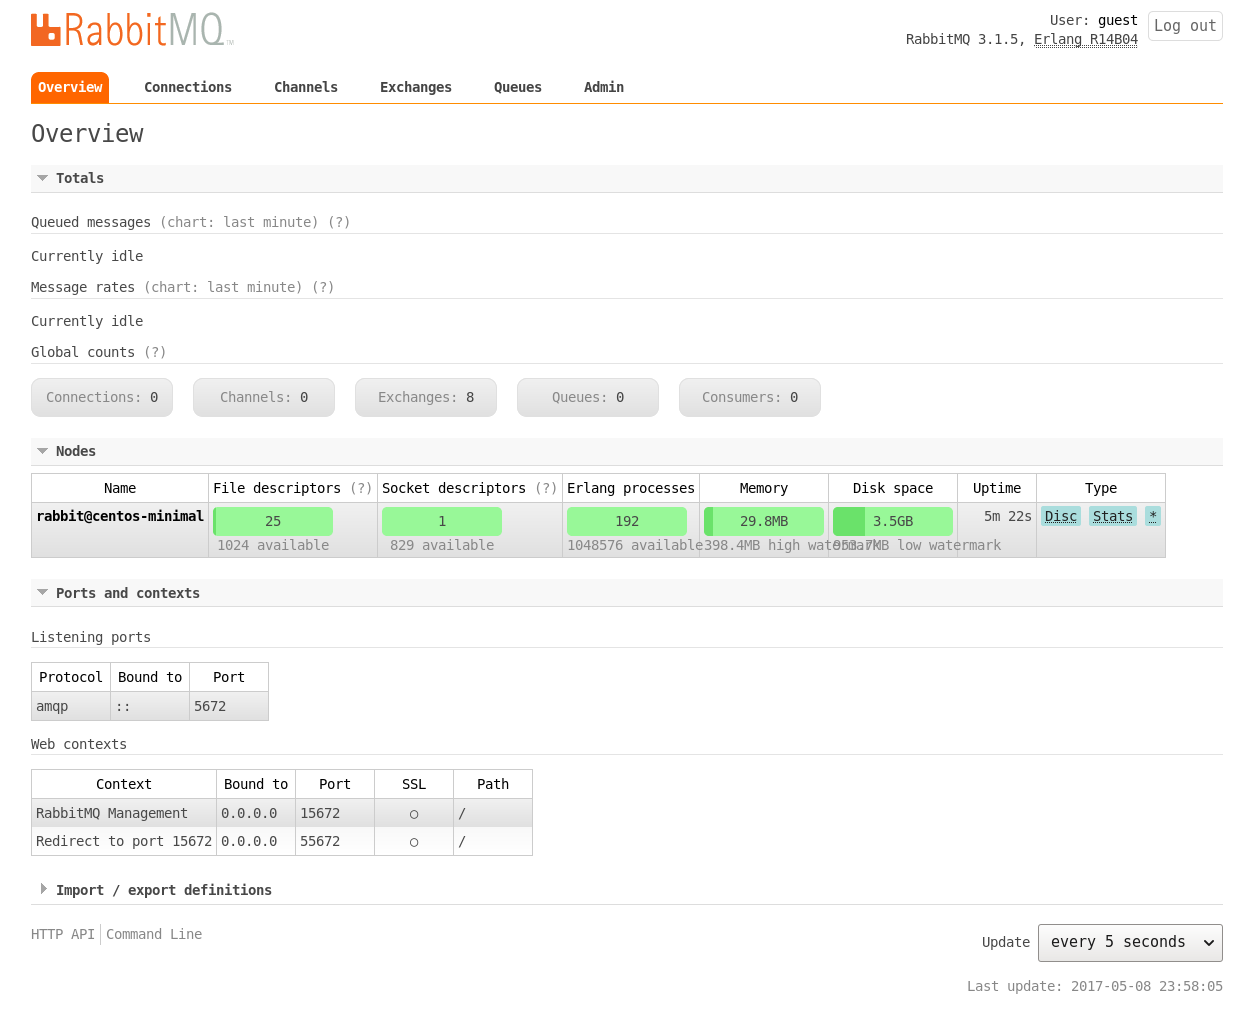 RabbitMQ Overview